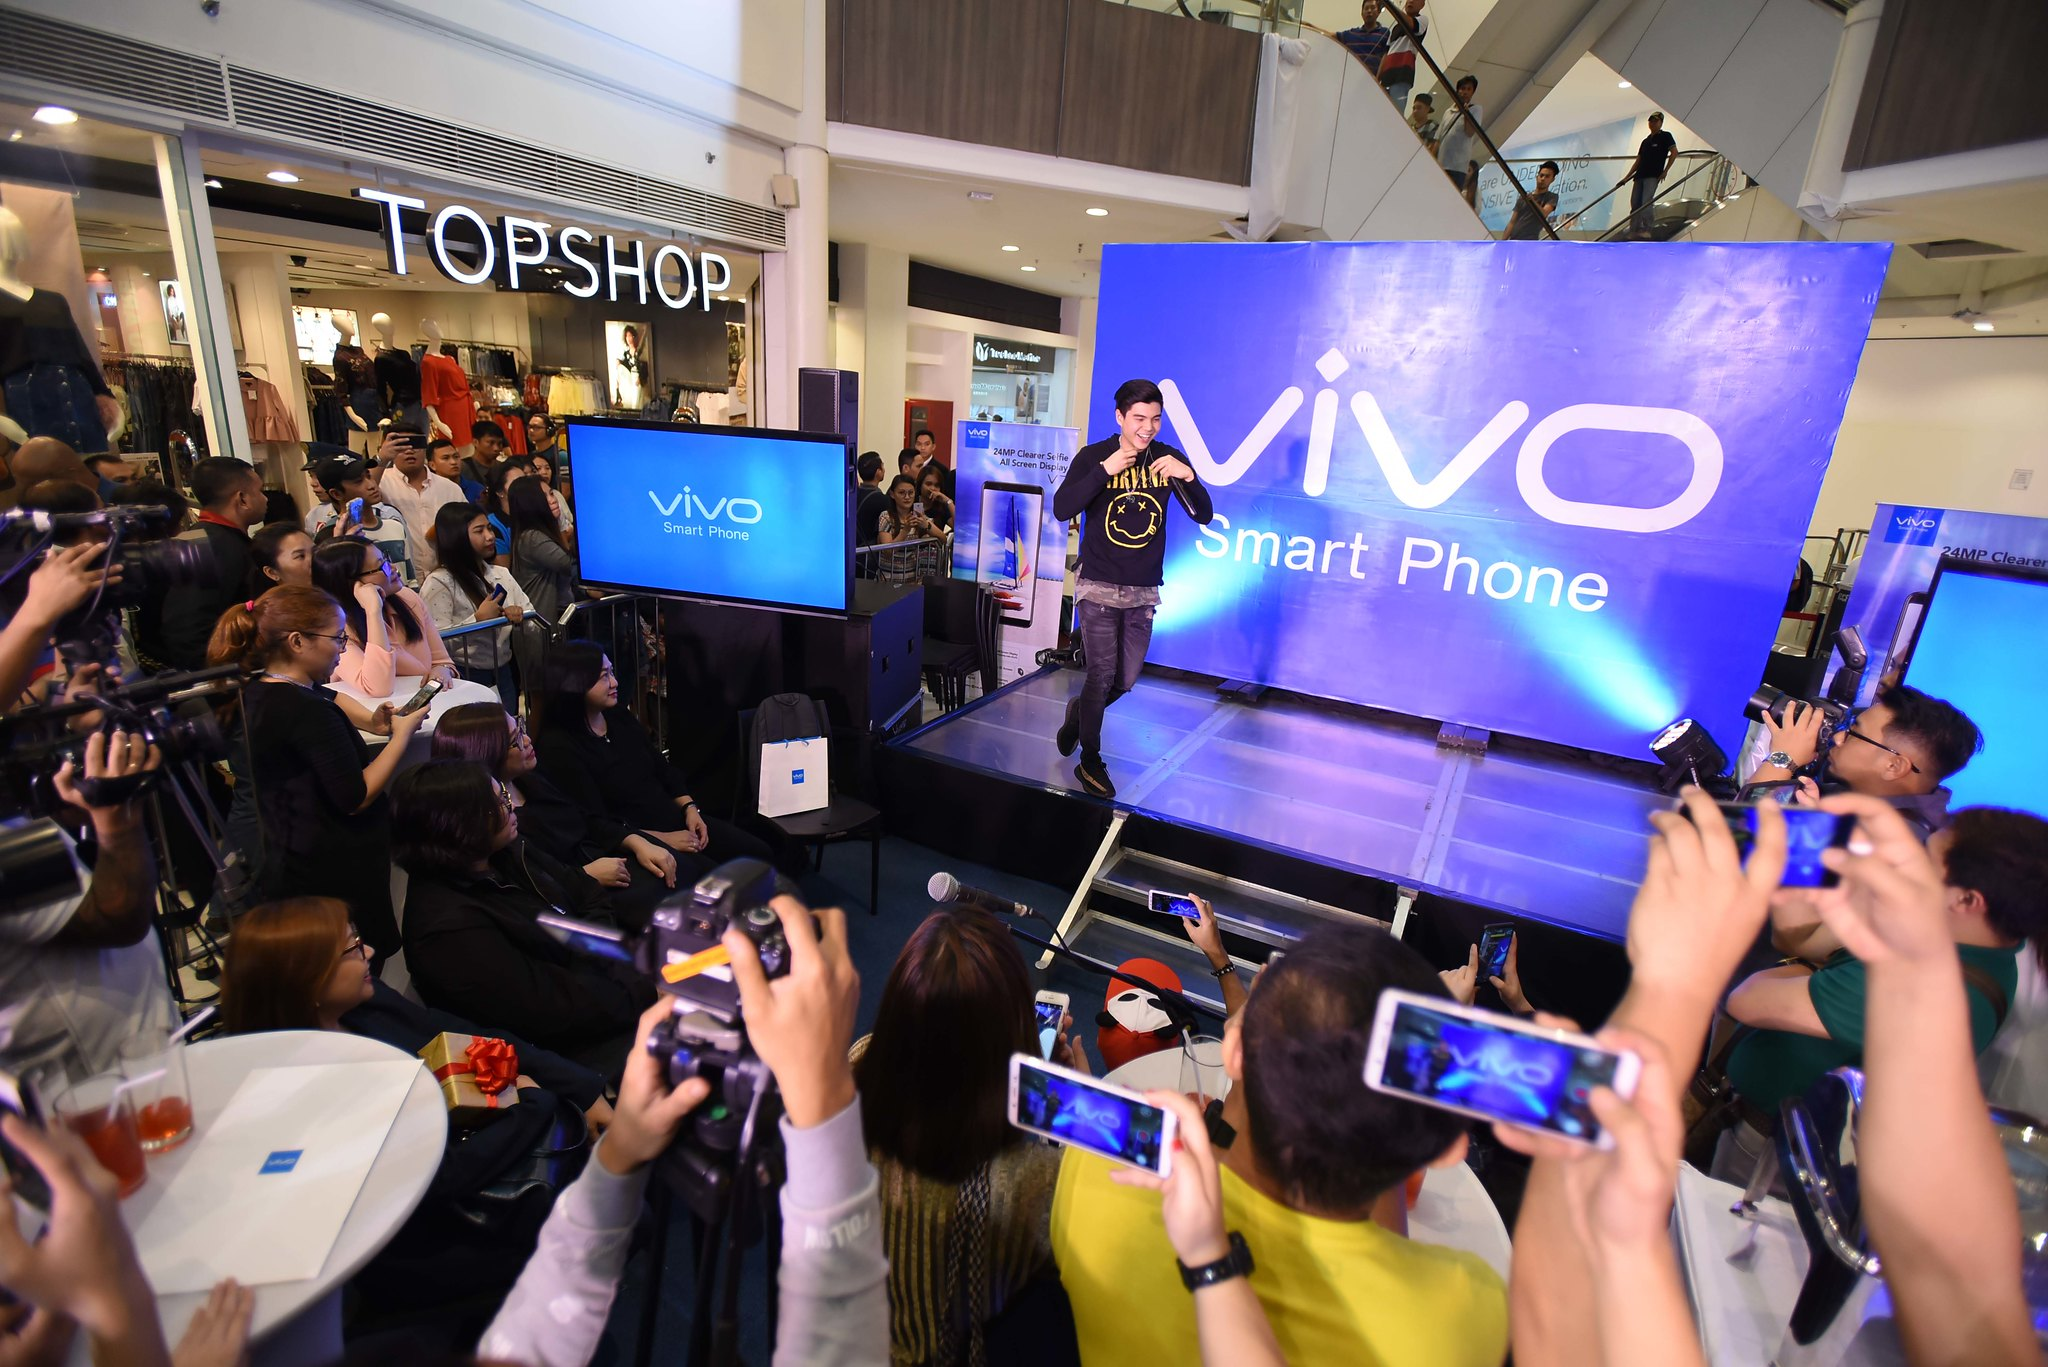 Tech News: Vivo and Robinsons Partnership